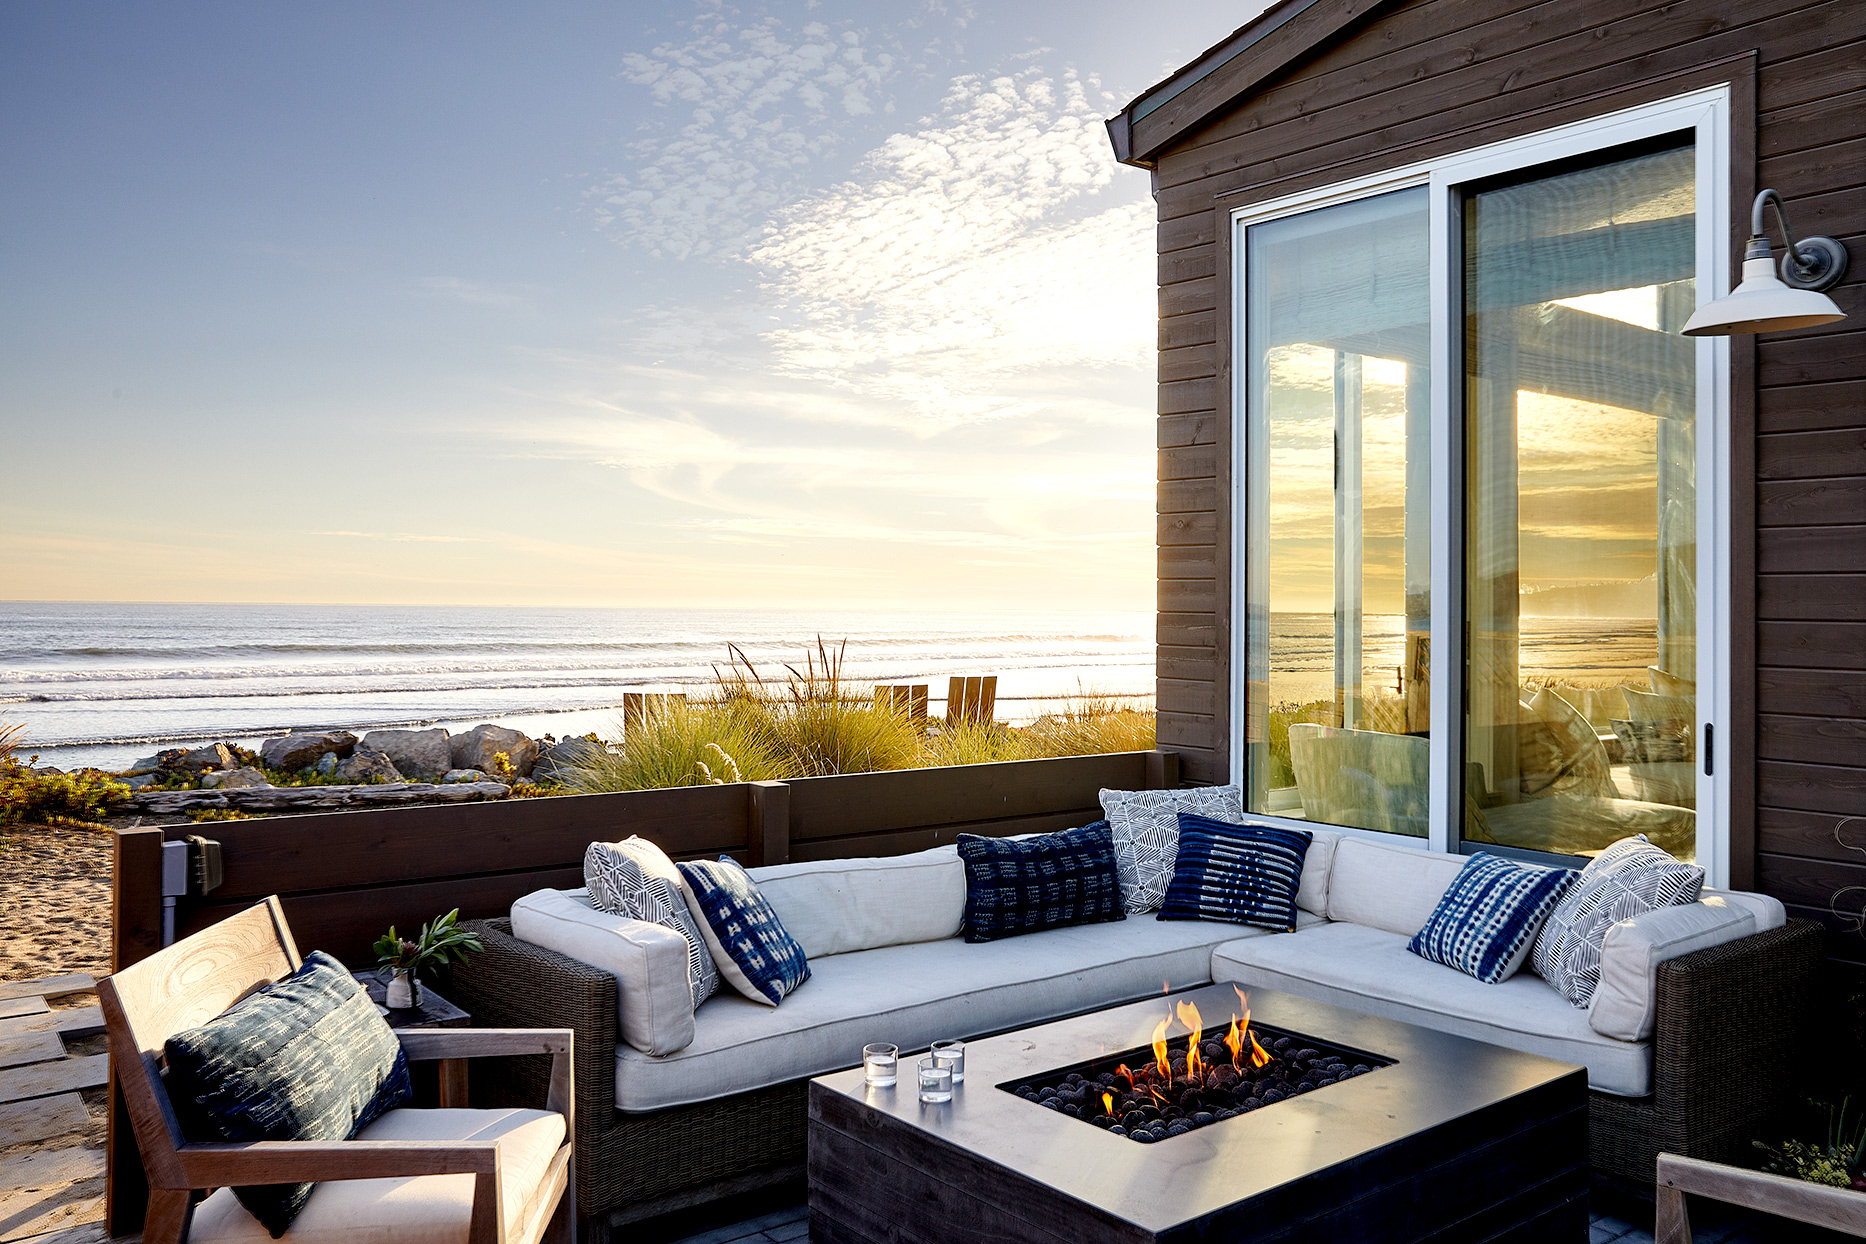 Porch with couch seating and bonfire pit